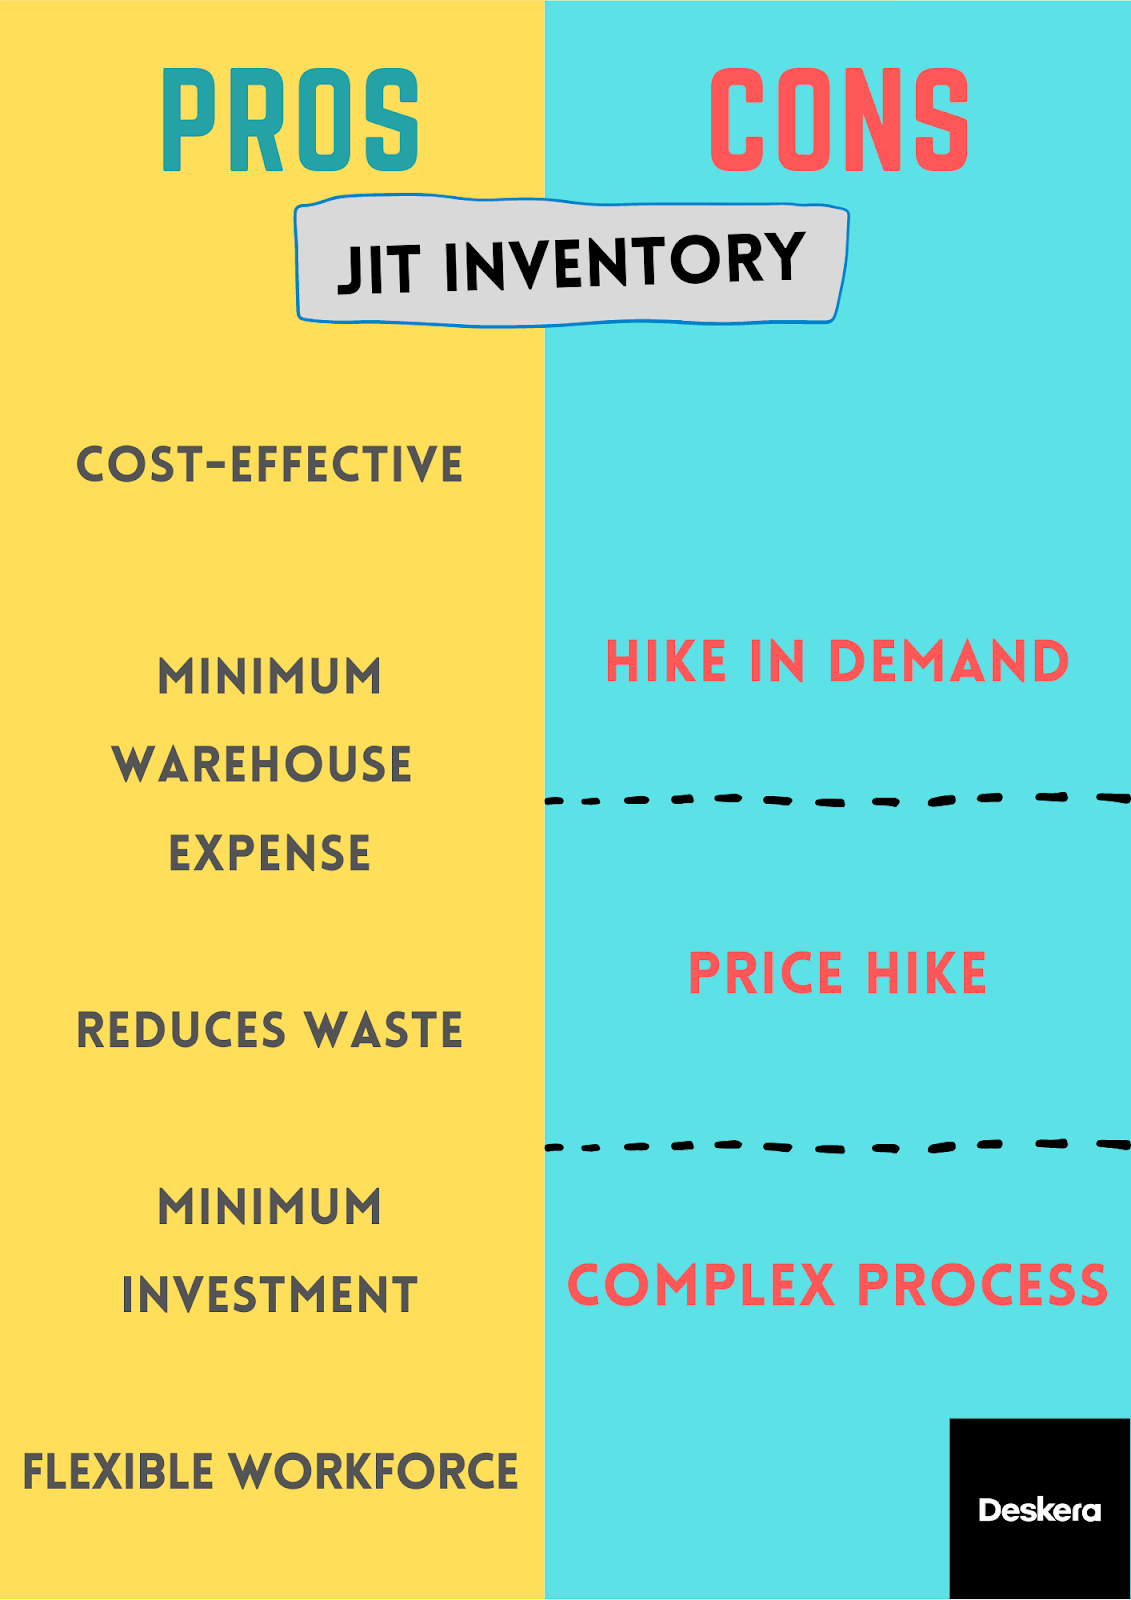 Pros & Cons of JIT Inventory